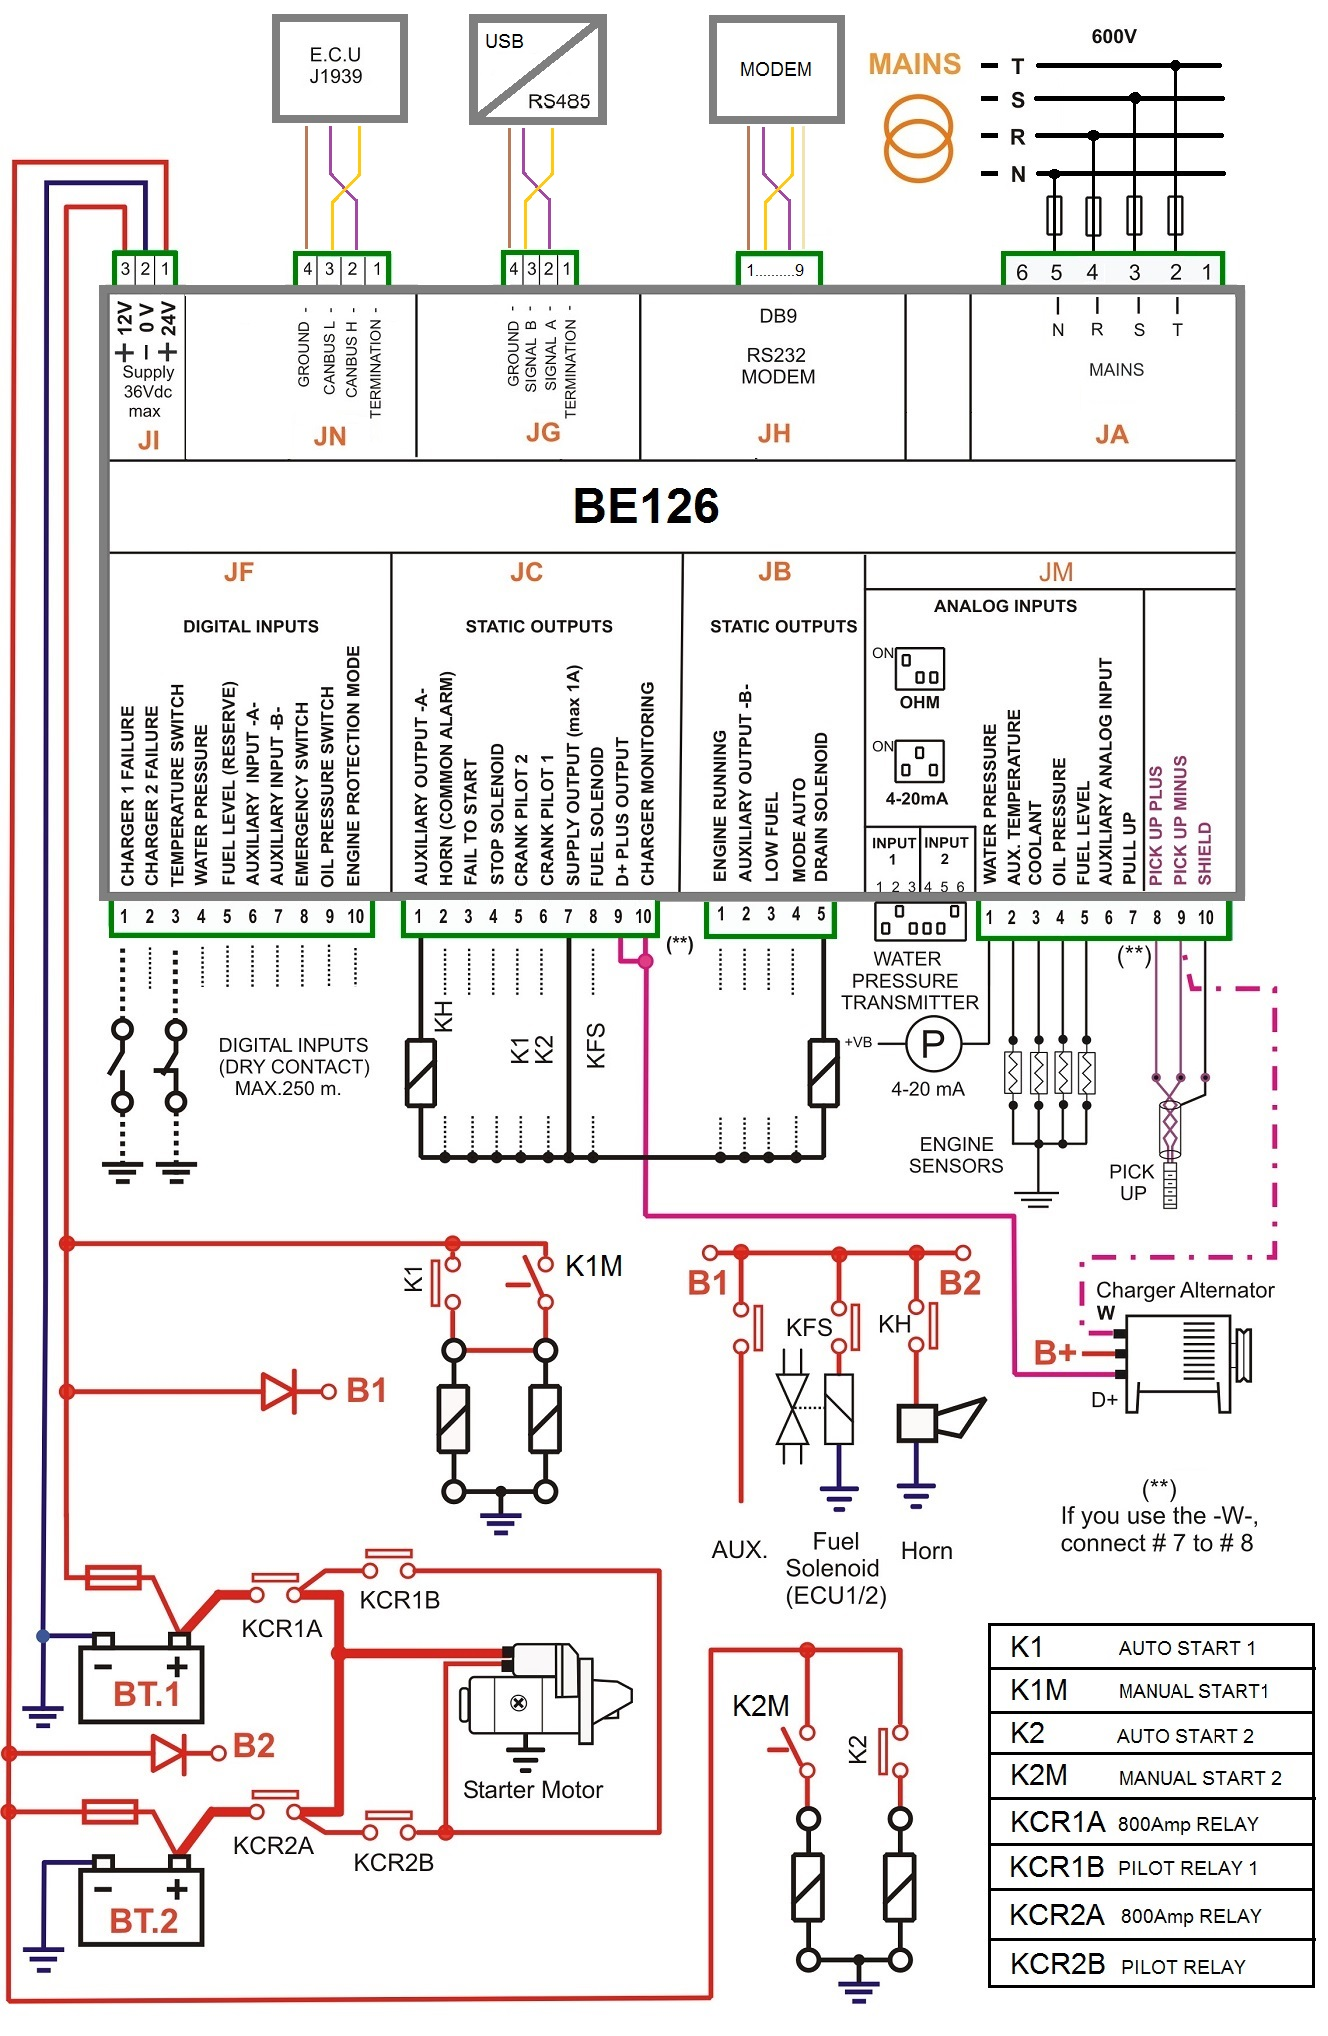 Ultra Jet Mod 5kcr48tn2351bx Wiring Diagram in addition Mtrus Tt505 furthermore Polaris Spa Air Blower Wiring Diagram together with Ao Smith Pool Pump Motor Wiring Diagram likewise Mtraos 182688. on emerson pool pump motor wiring diagram